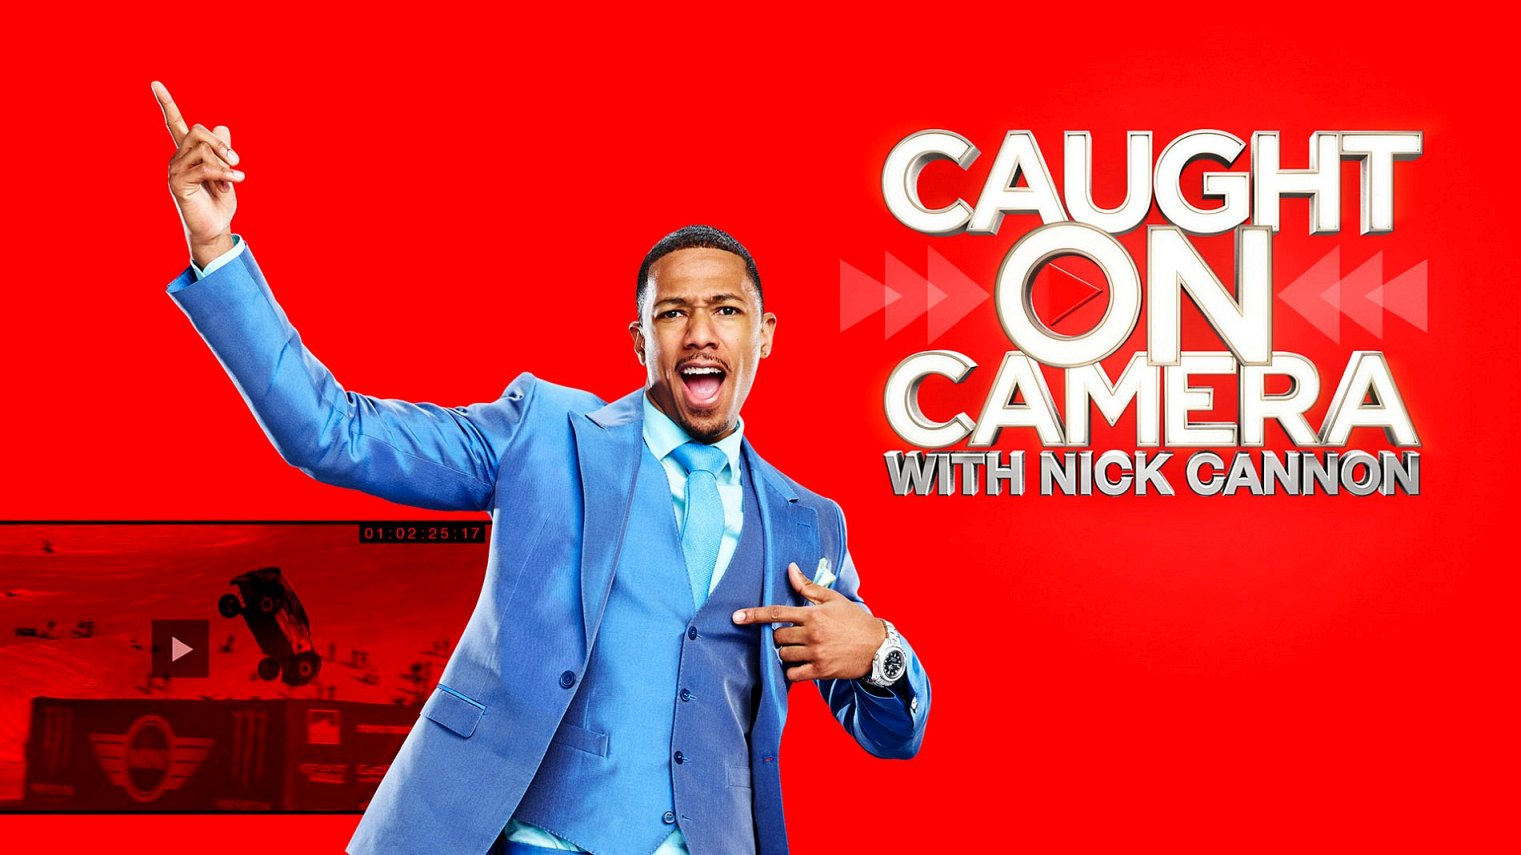 what time does Caught on Camera with Nick Cannon come on